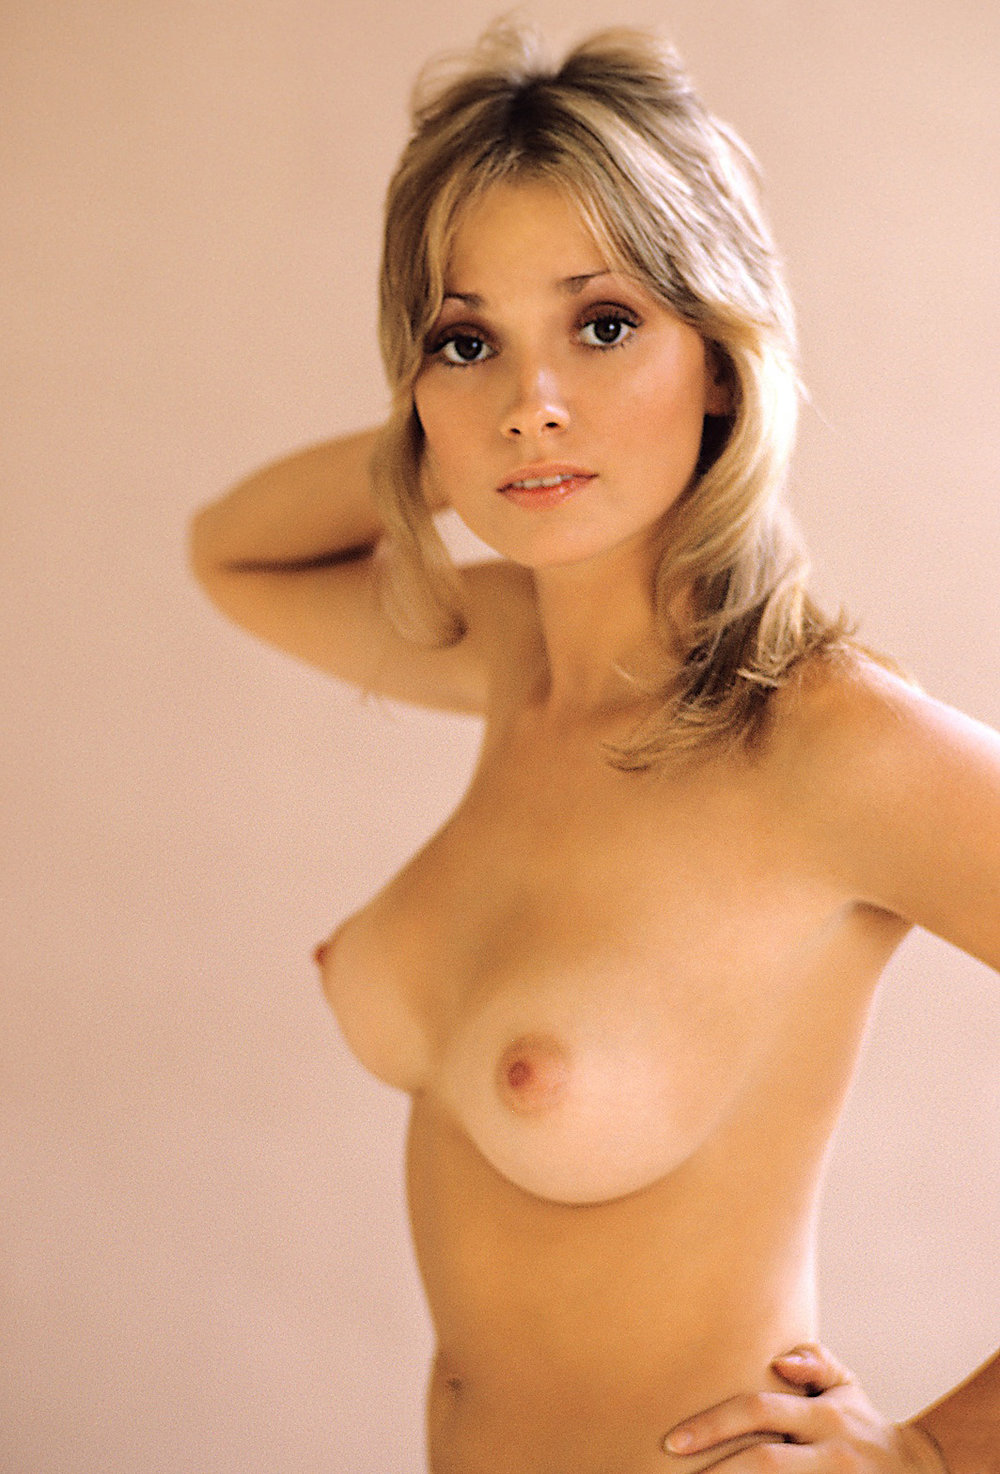 Cyndi Wood Playboy Playmate Of The Year 1974 07.jpg